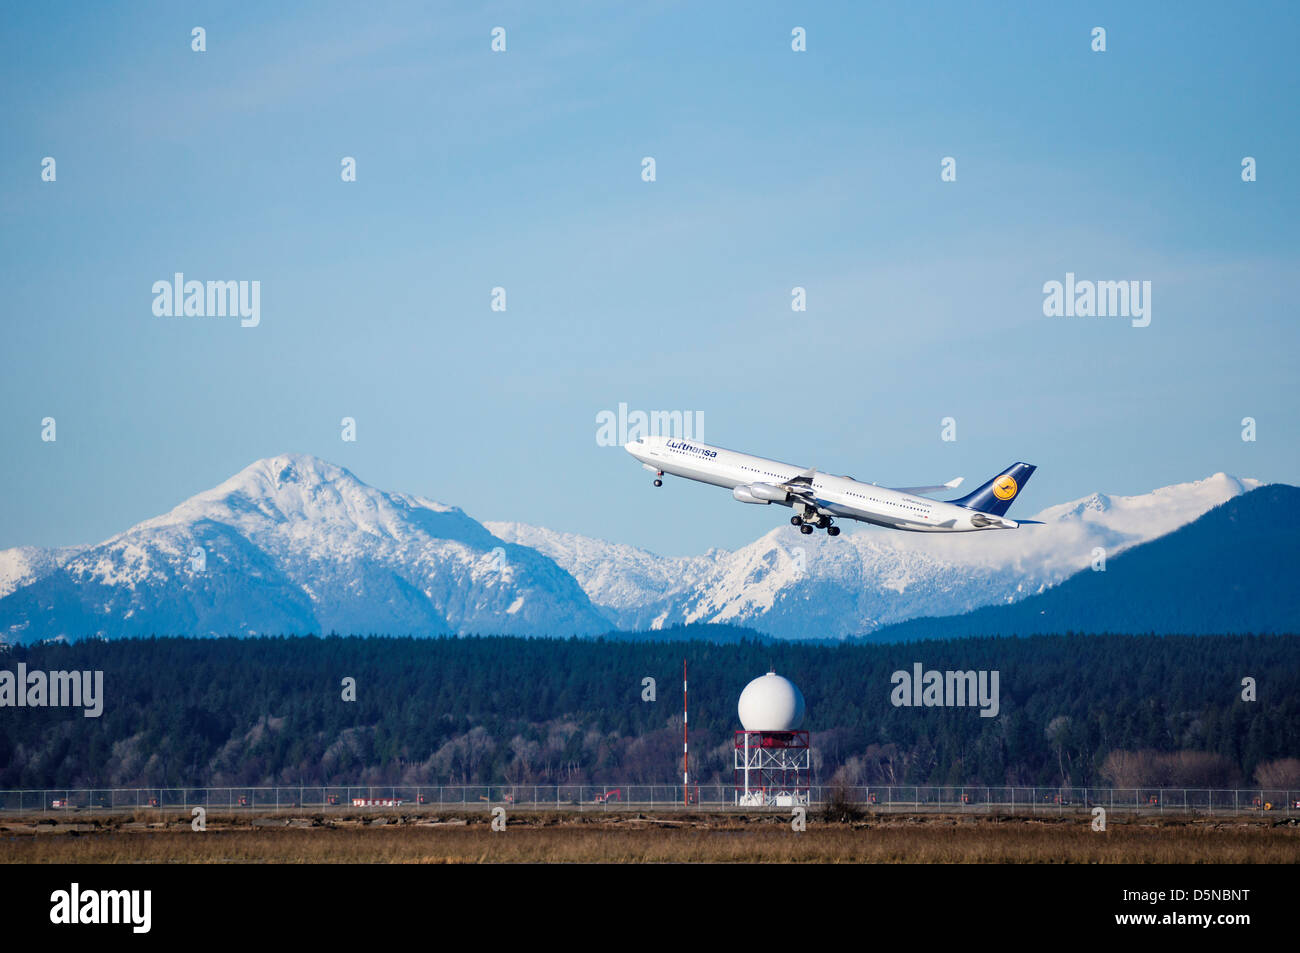 Lufthansa aircraft is taking off in Vancouver International Airport. - Stock Image